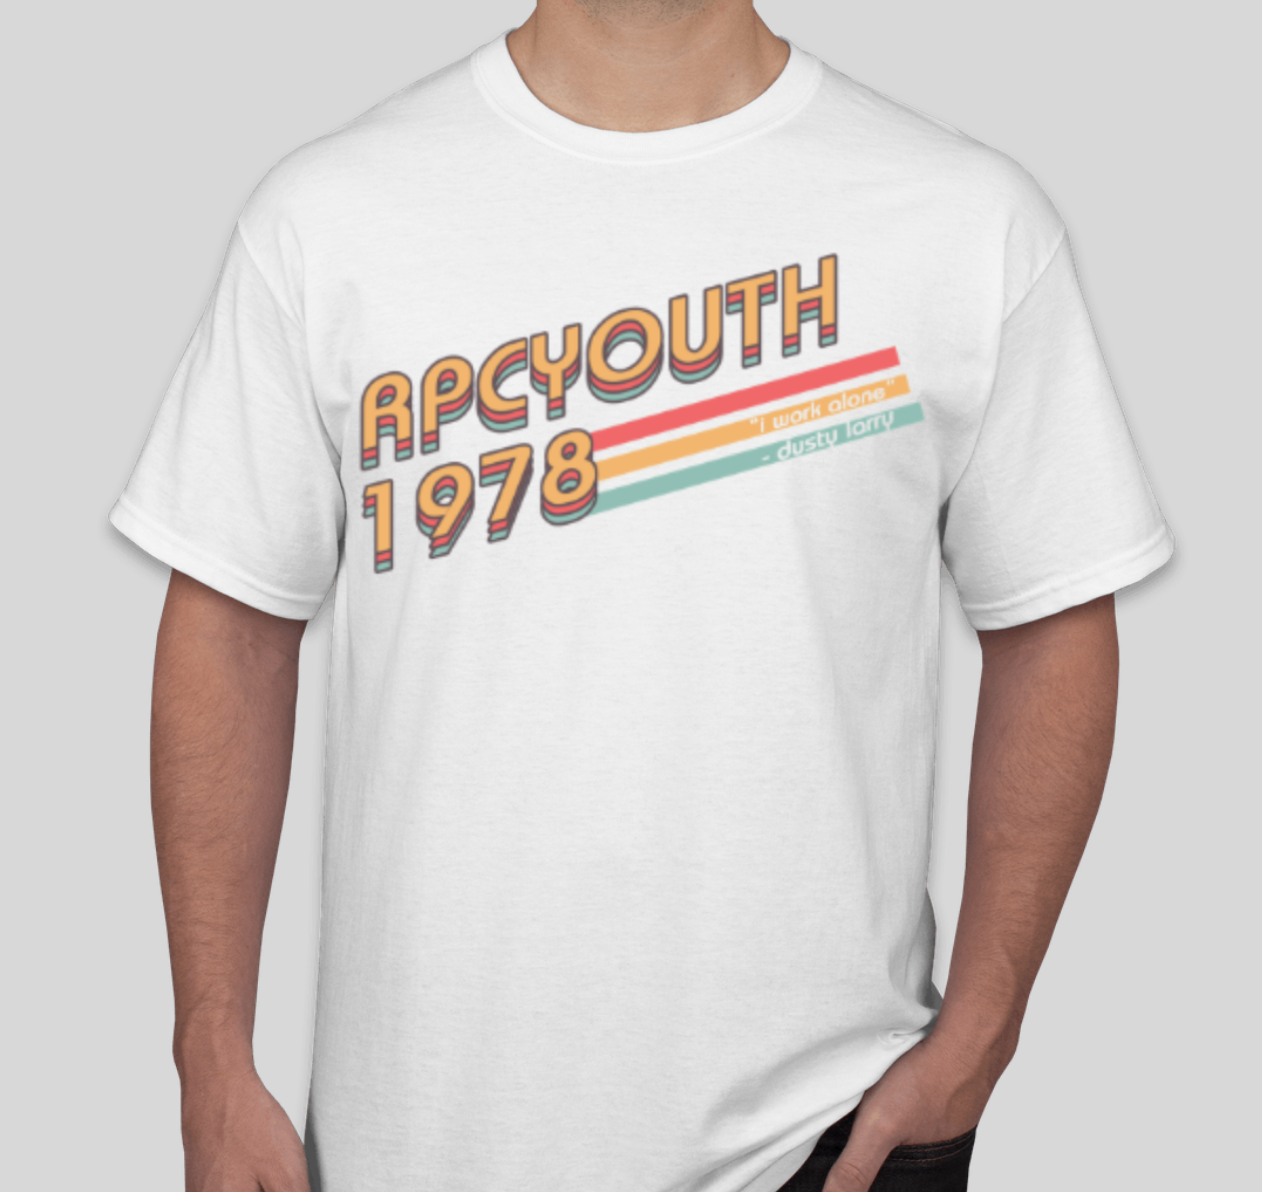 """RPCYOUTH """"Dusty Larry"""" Tee // """"I work alone"""" - $15 // order by Oct. 22th"""